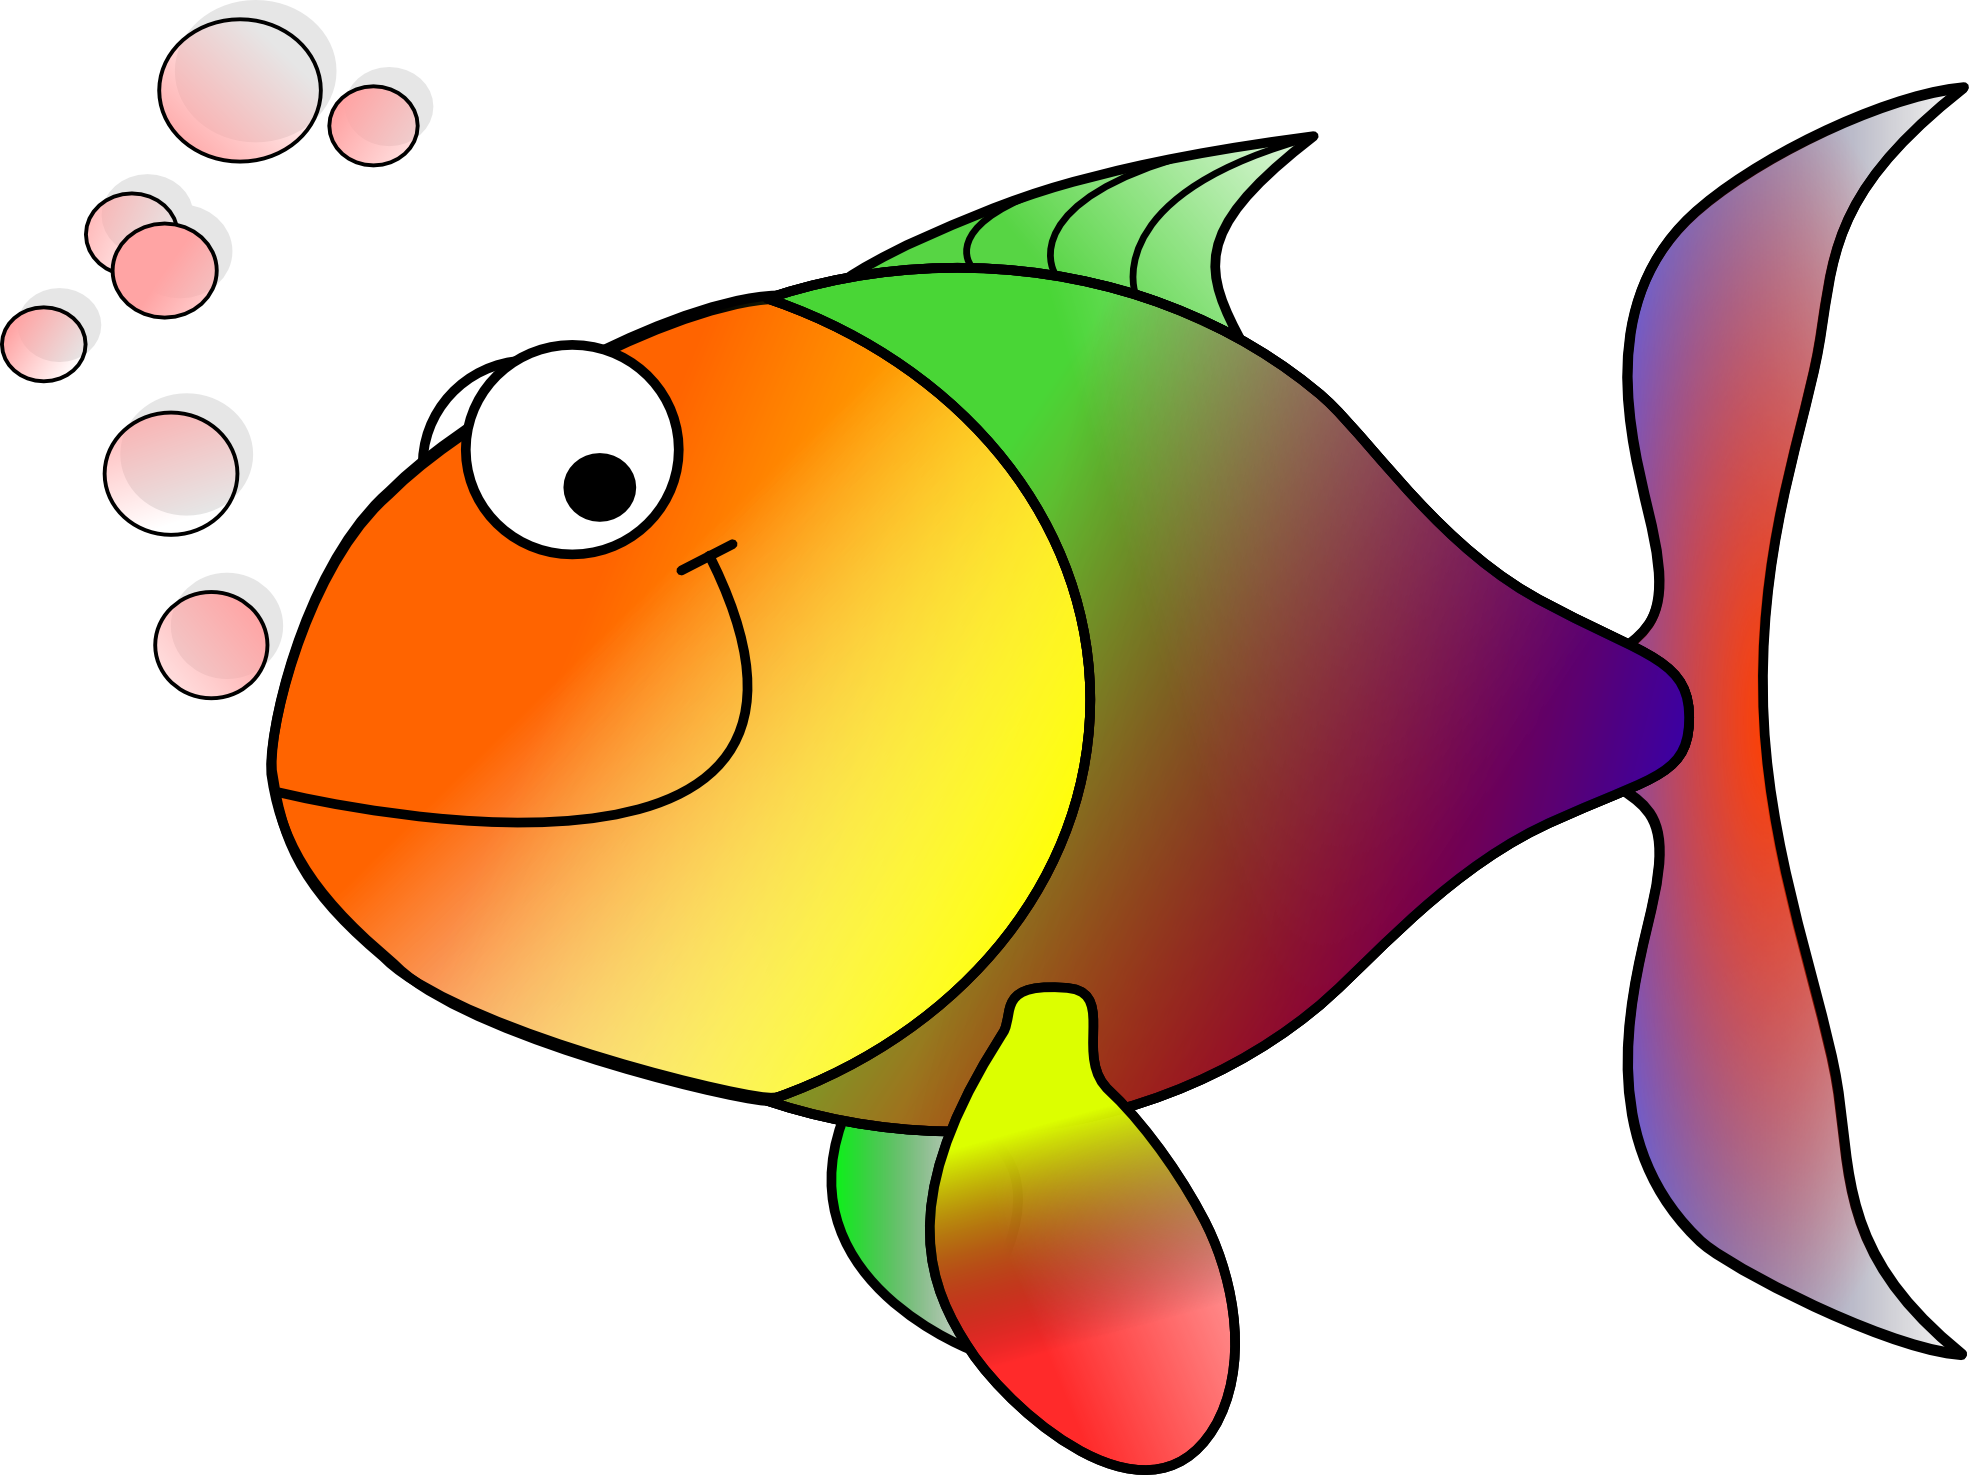 Clipart for fish graphic library download Free Clip art - Clip Art Collection - Download Clipart on Clipart ... graphic library download